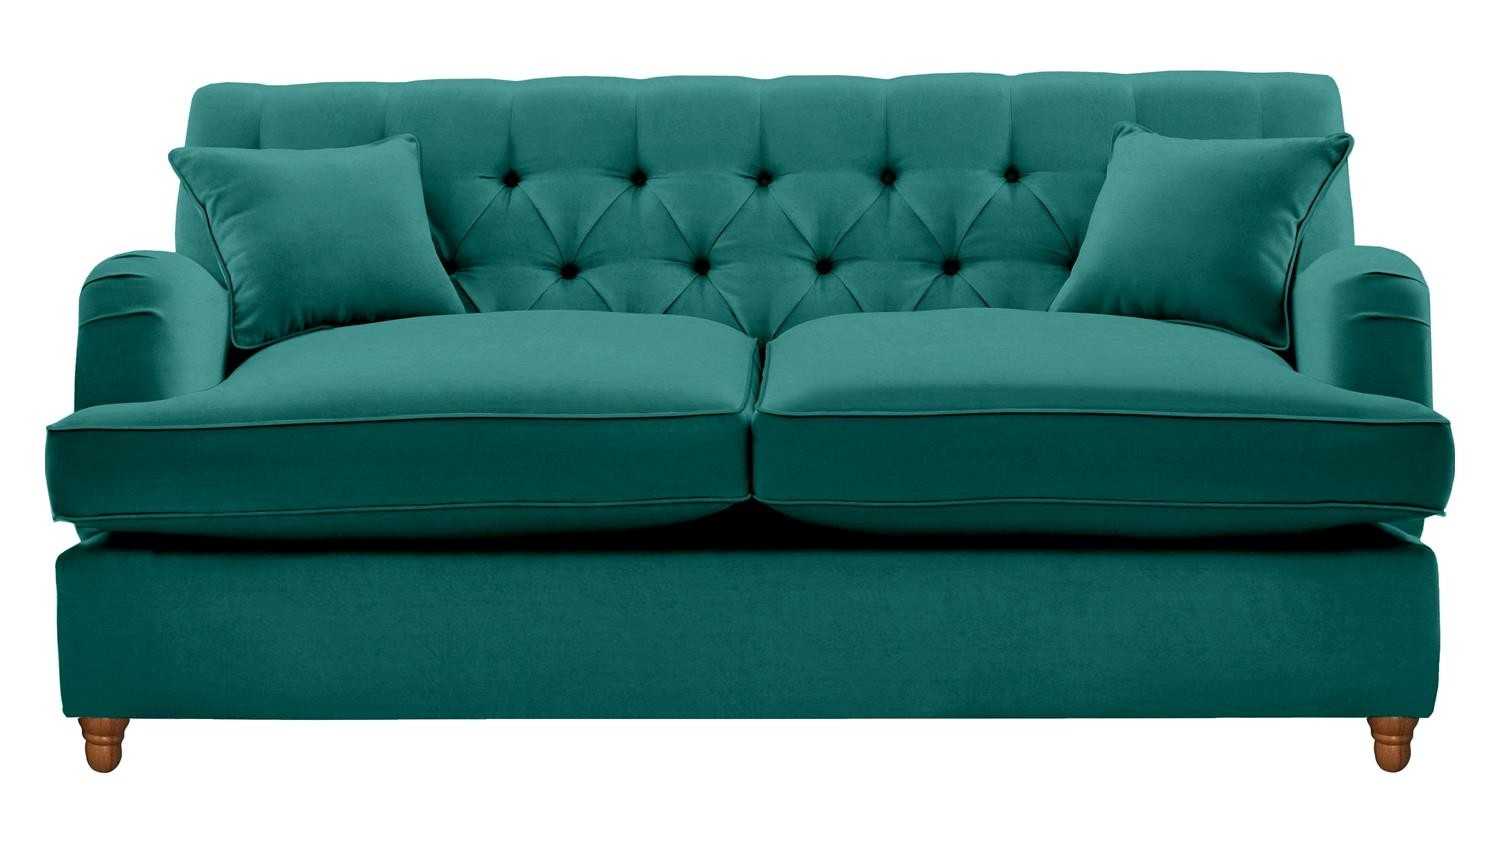 The Foxcote 2 Seater Sofa Bed